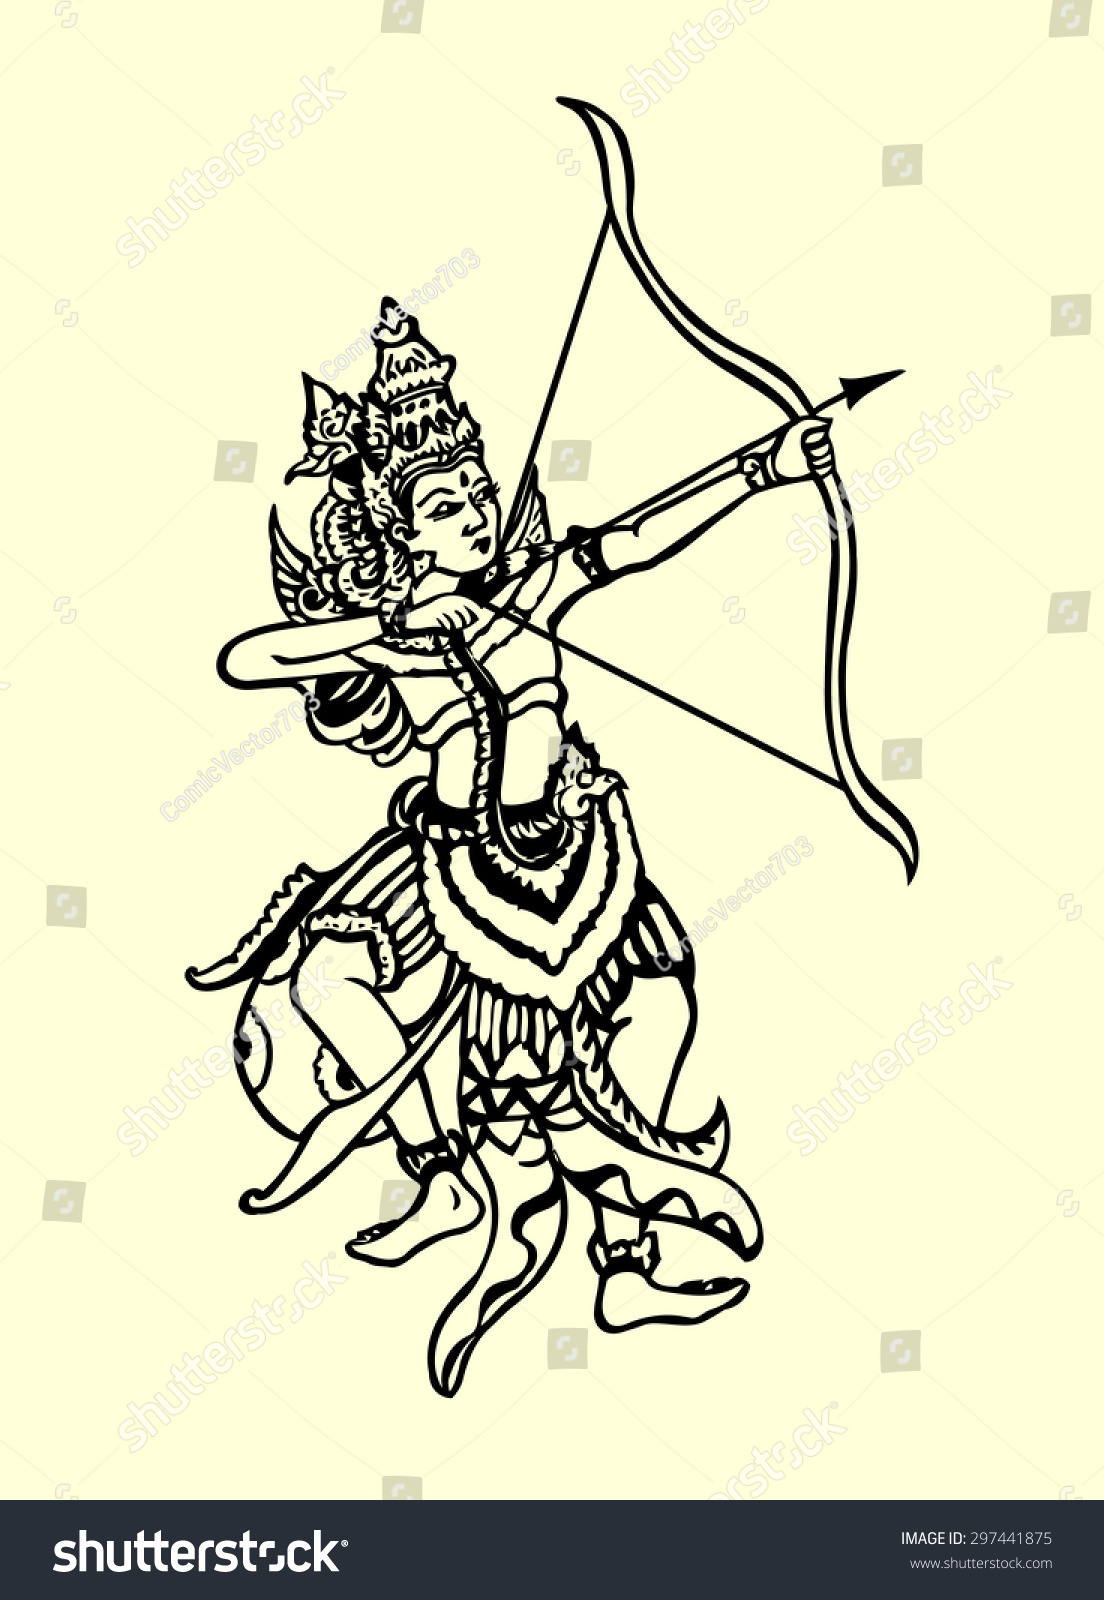 hight resolution of rama archery pose traditional hand drawing illustration style classic ramayana story book